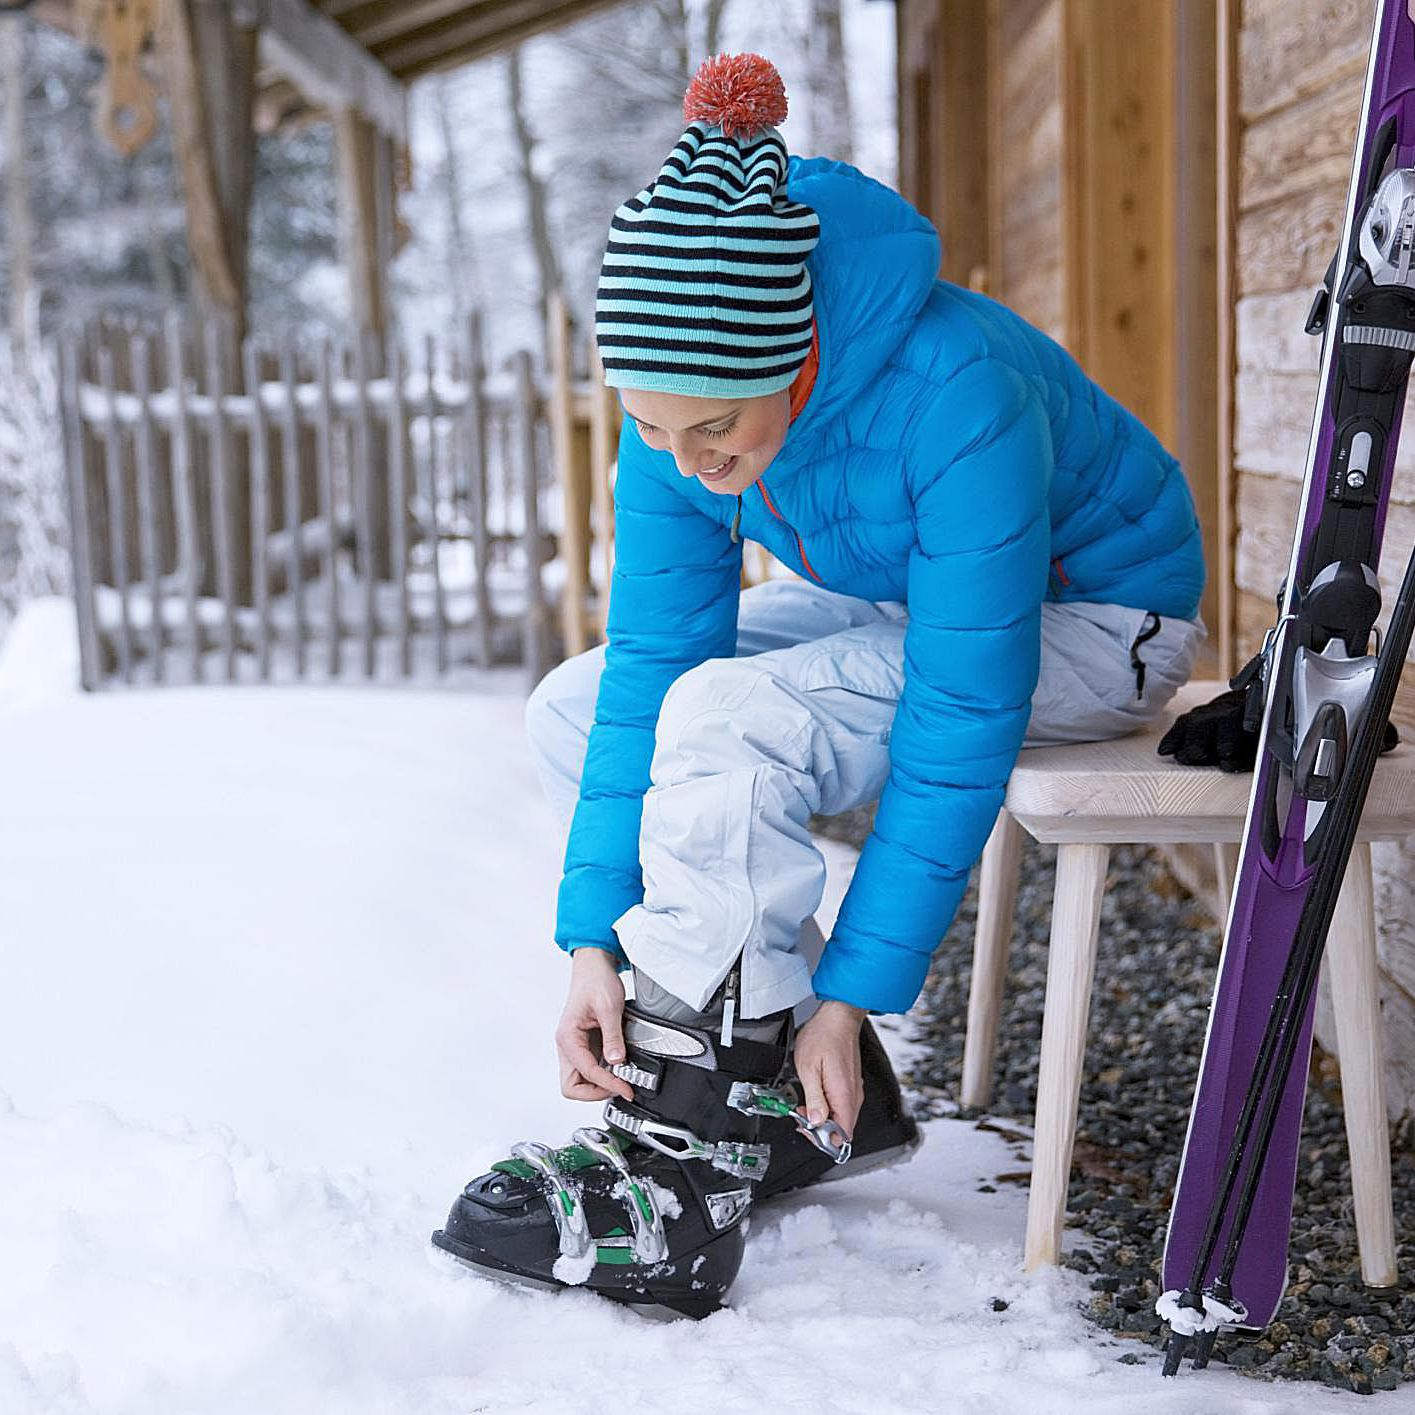 Buckle Your Ski Boots the Easy Way